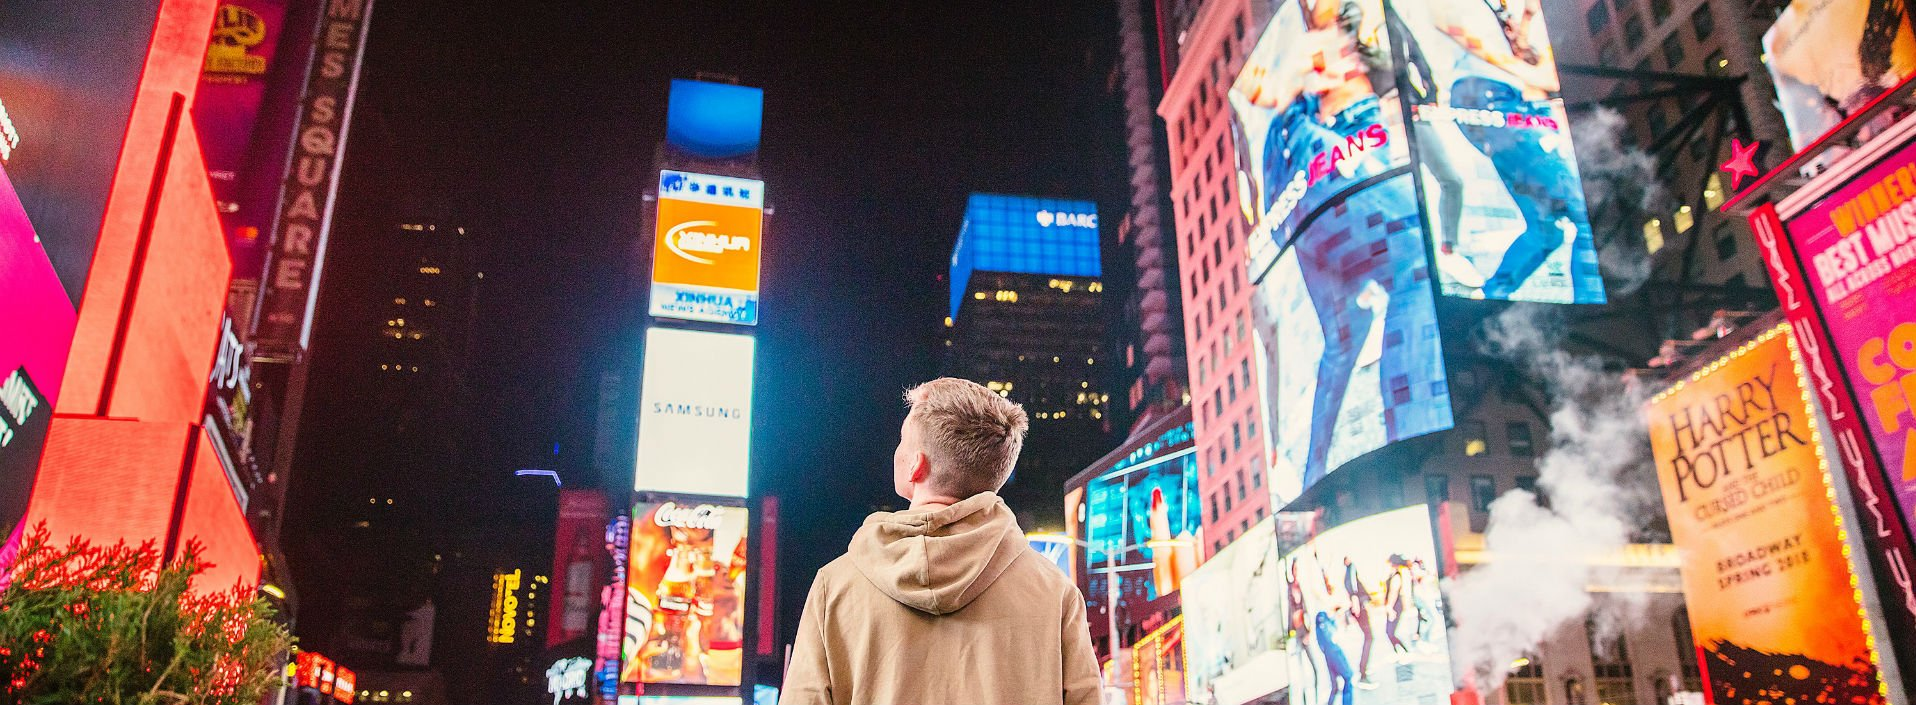 Man standing in Times Square looking at advertisements on the buildings showing marketing terms in English.